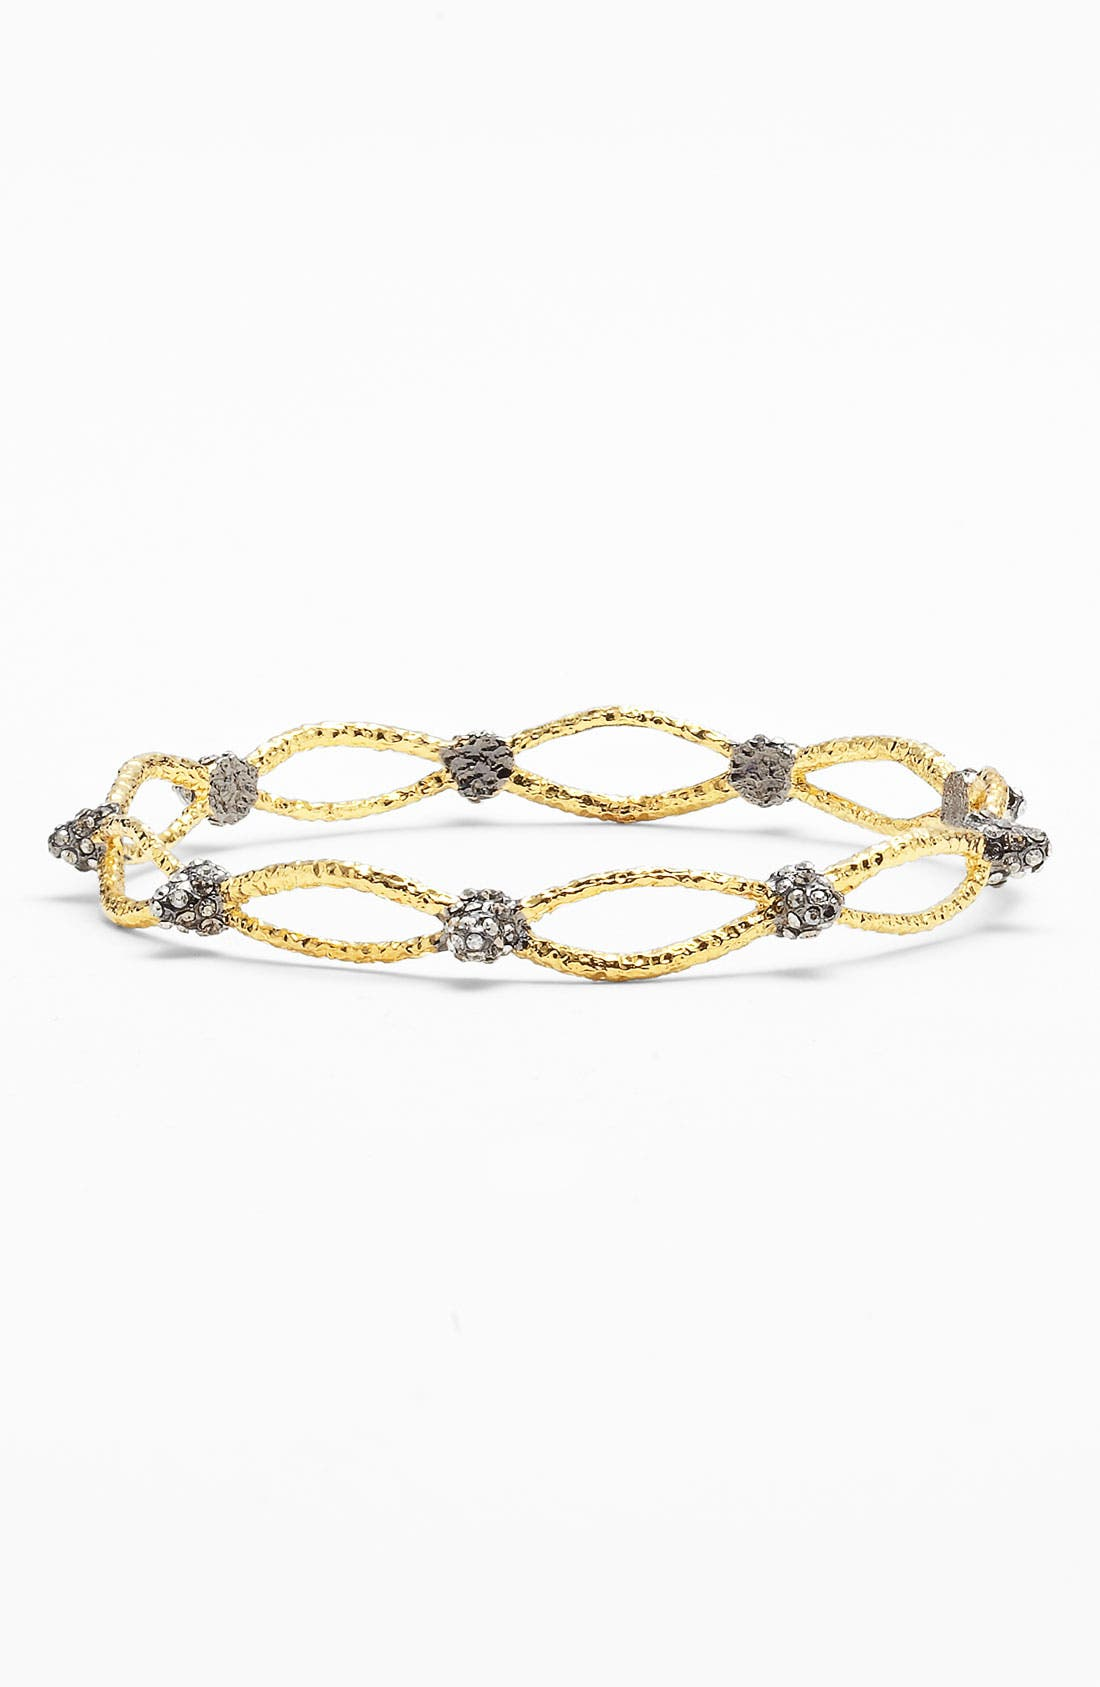 Alternate Image 1 Selected - Alexis Bittar 'Elements - Siyabona' Spiked Woven Bangle